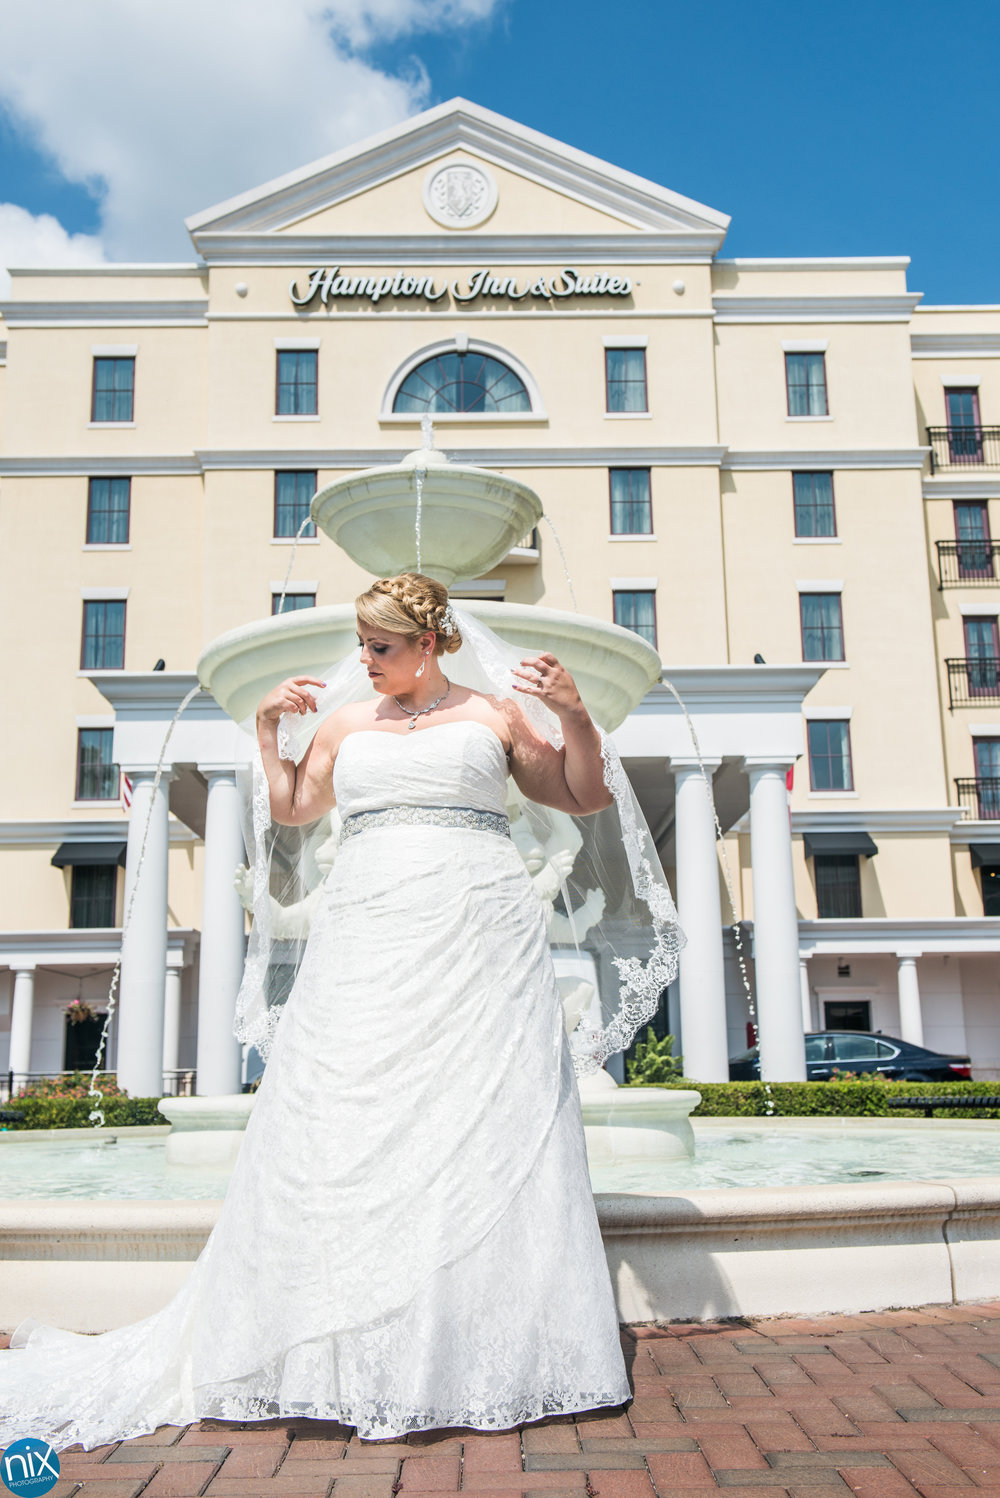 bride-fountain-hamton-inn-suites.jpg